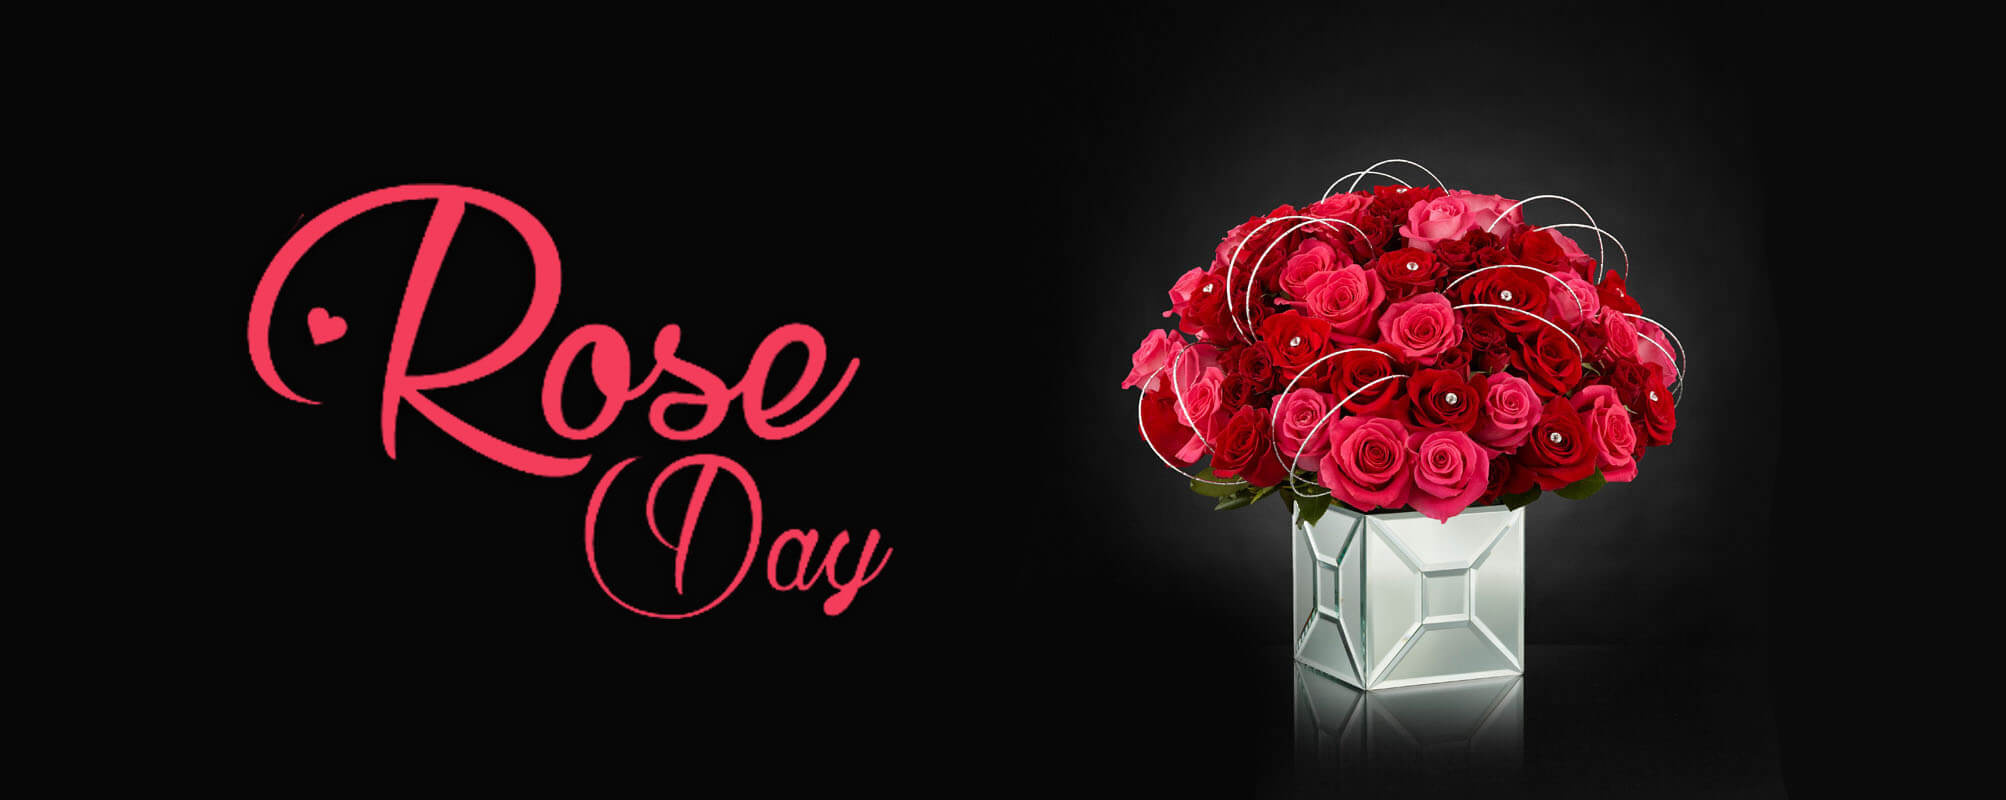 happy rose day red love girl friend valentine wishes greetings image hd wallpaper